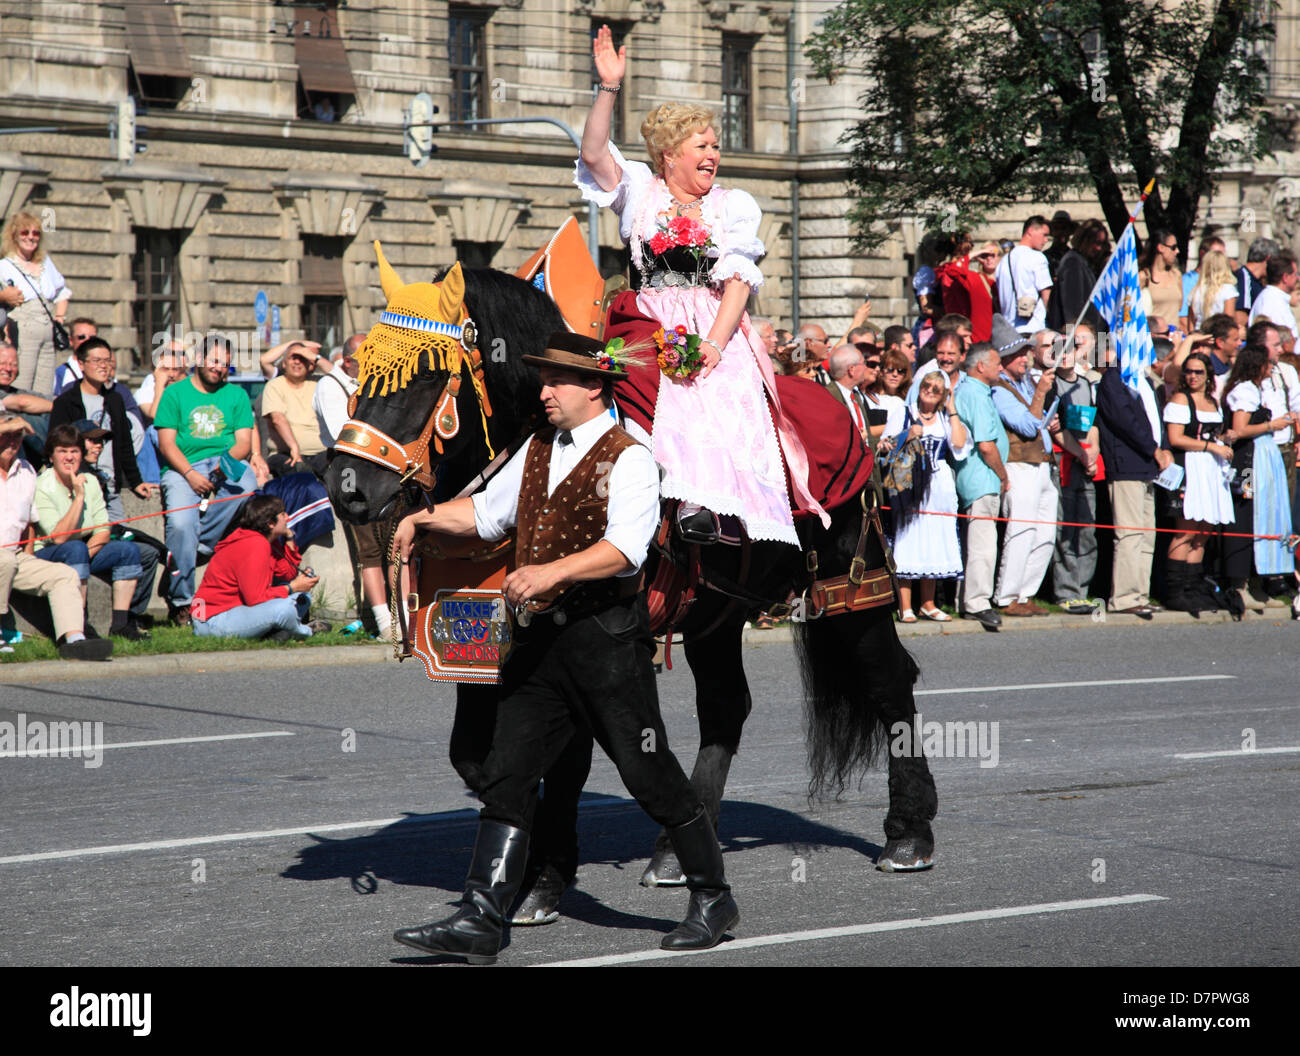 Traditional bavarian costume parade at the Oktoberfest, Octoberfest, Beer festival, Munich, Bavaria, Germany - Stock Image